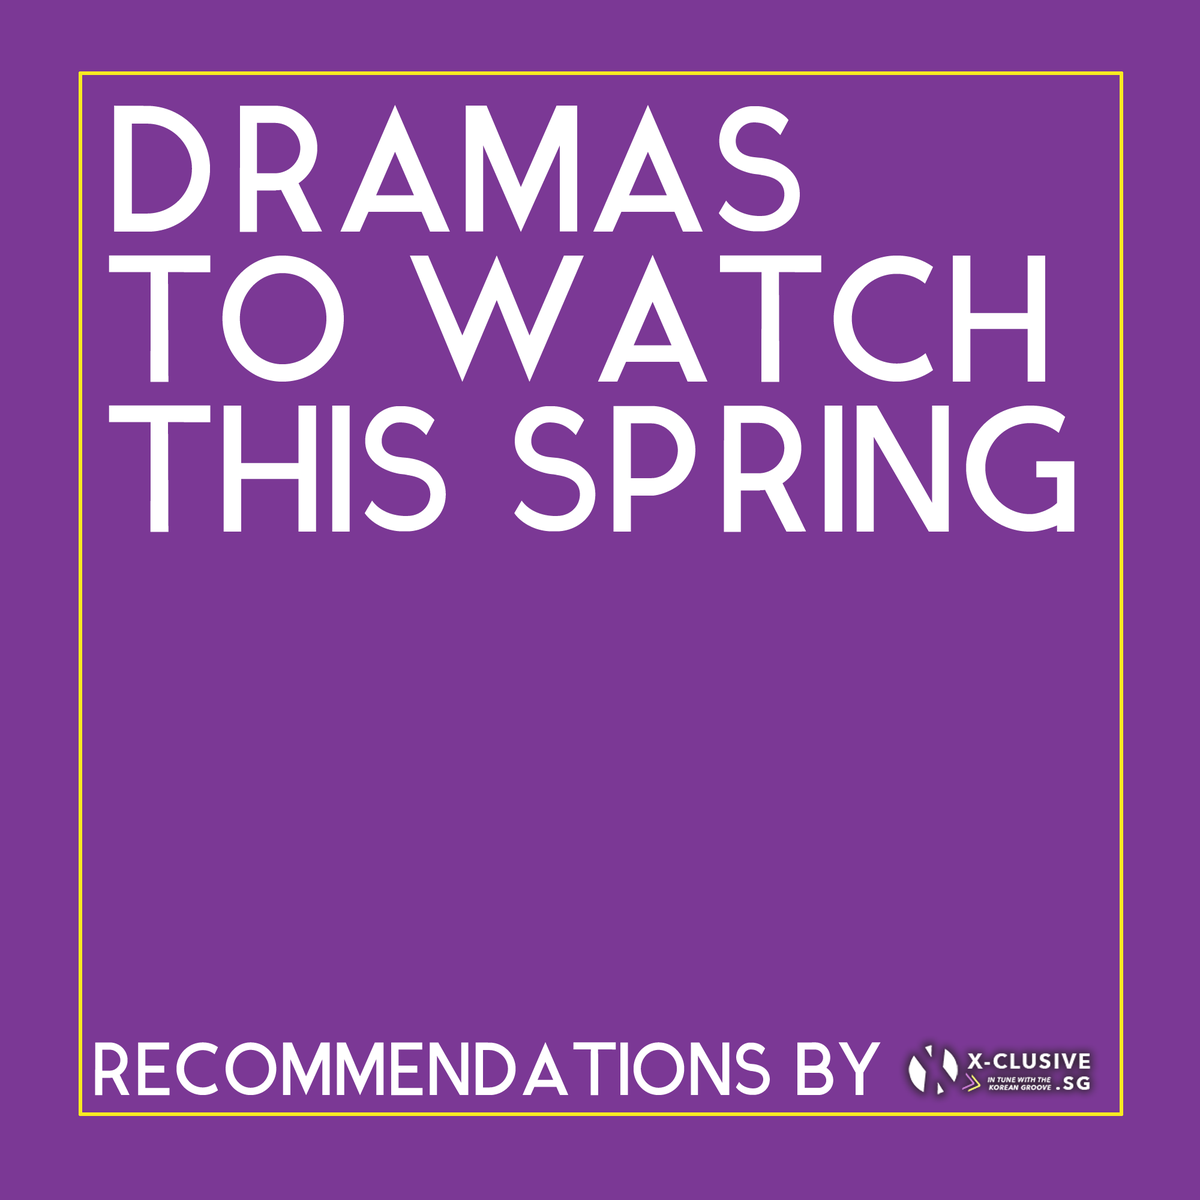 What #kdramas are you watching these days? We share some fluffy shows you might wanna watch this spring. 🌸 All available on Netflix! 😏 instagram.com/p/B-haQcTHLrU/…